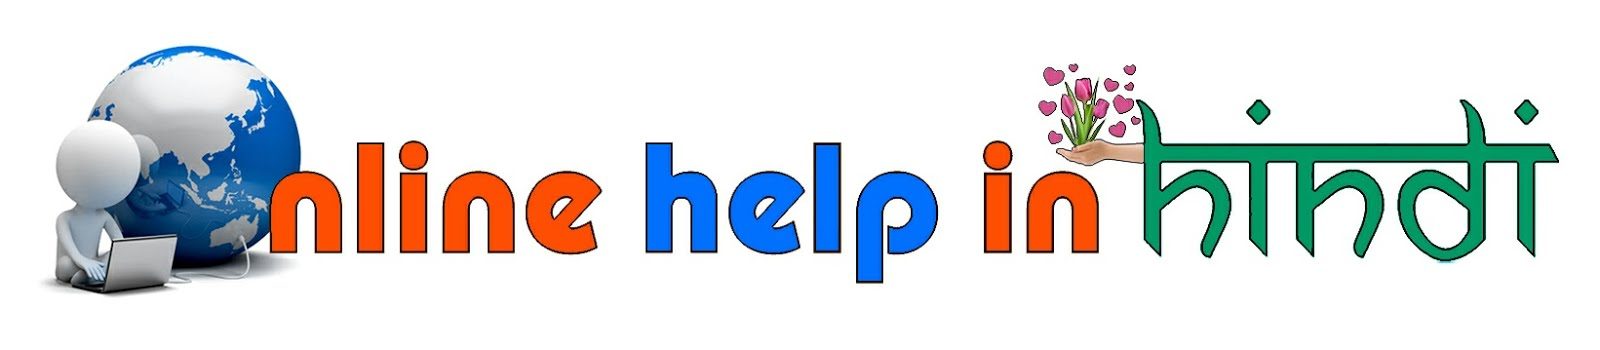 Online help in hindi